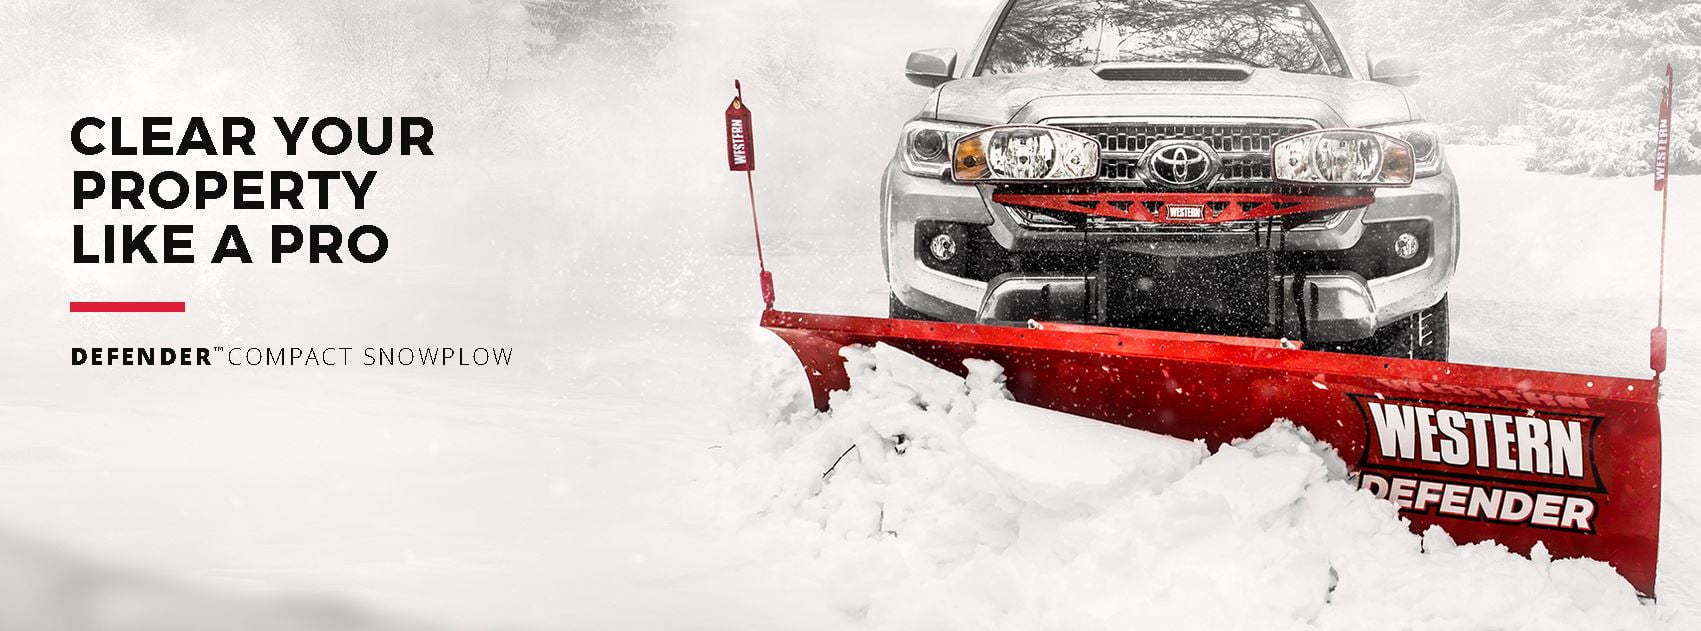 hight resolution of western defender snow plow personal residential plow